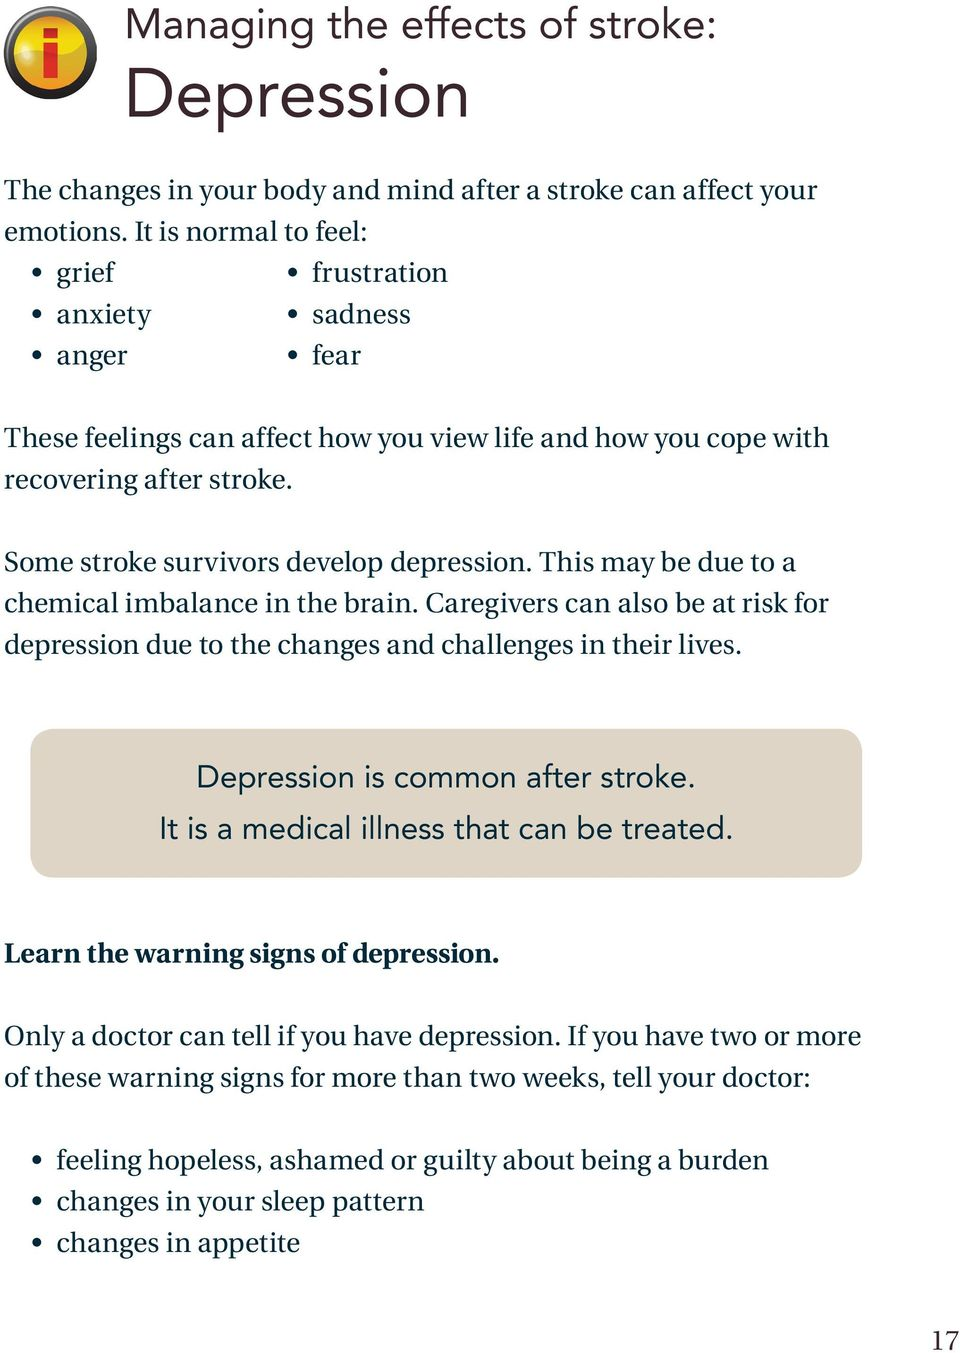 This may be due to a chemical imbalance in the brain. Caregivers can also be at risk for depression due to the changes and challenges in their lives. Depression is common after stroke.